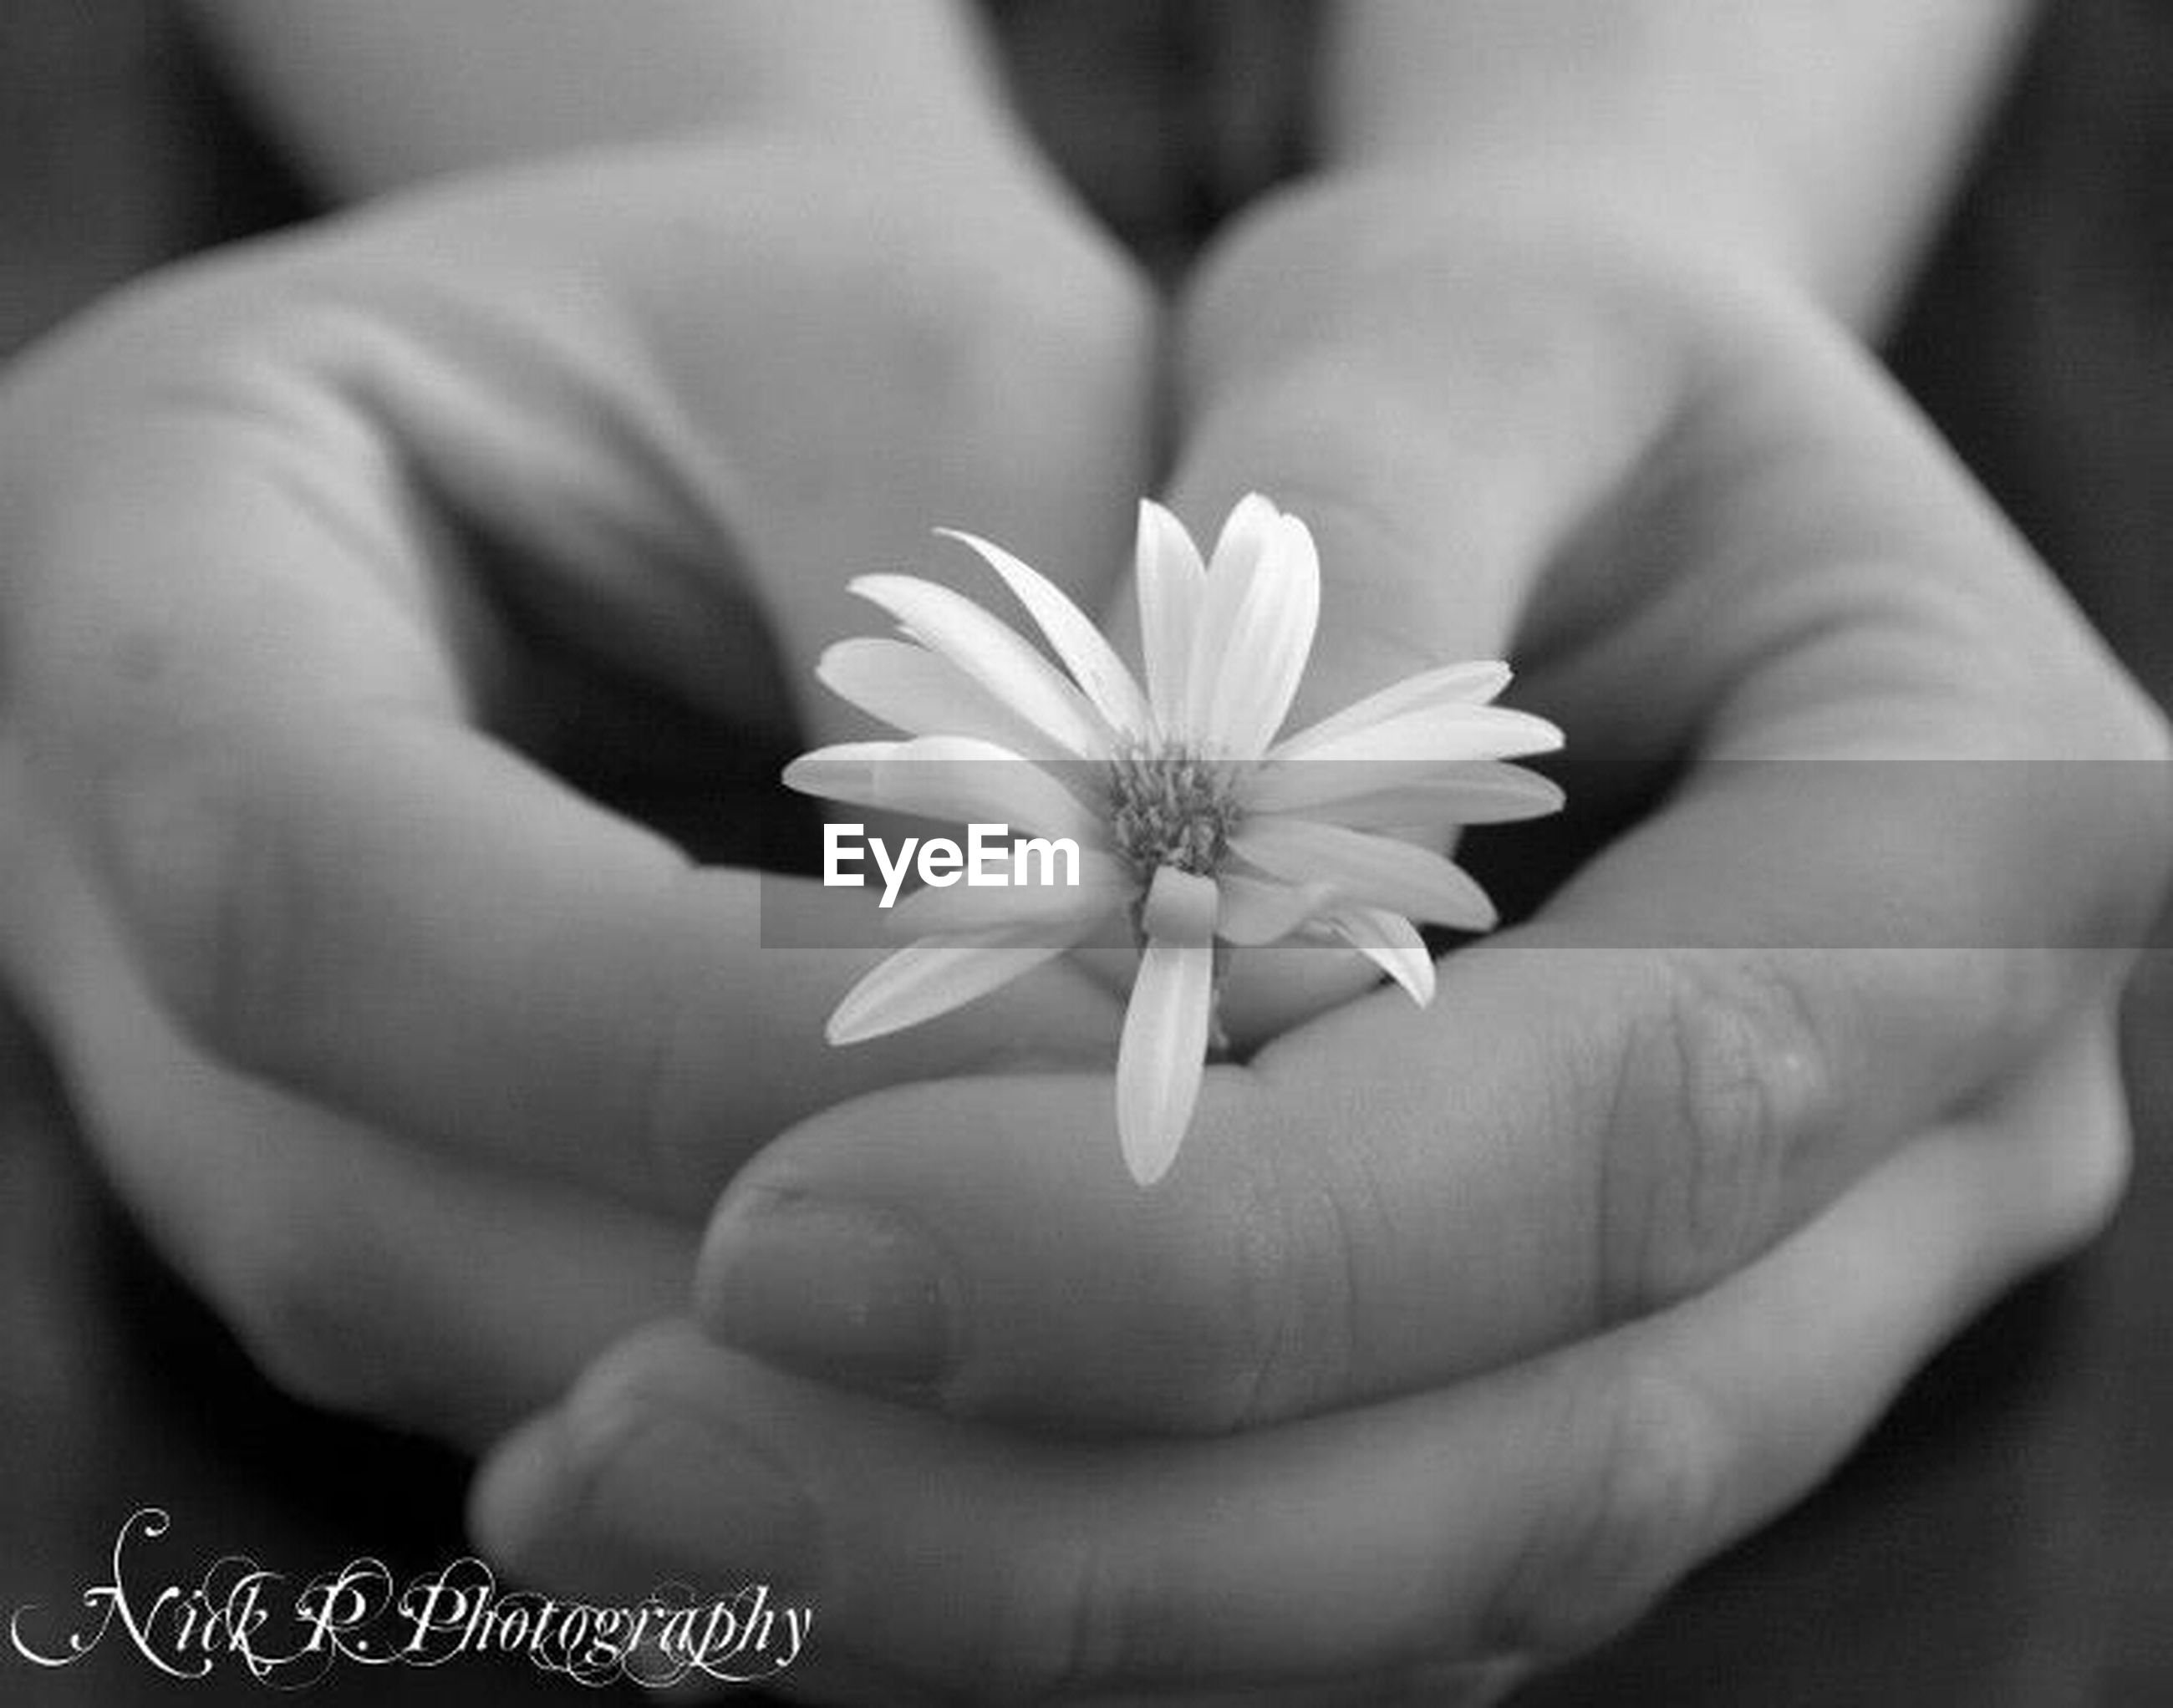 flower, petal, person, fragility, flower head, freshness, holding, close-up, part of, single flower, beauty in nature, focus on foreground, human finger, cropped, pollen, white color, stamen